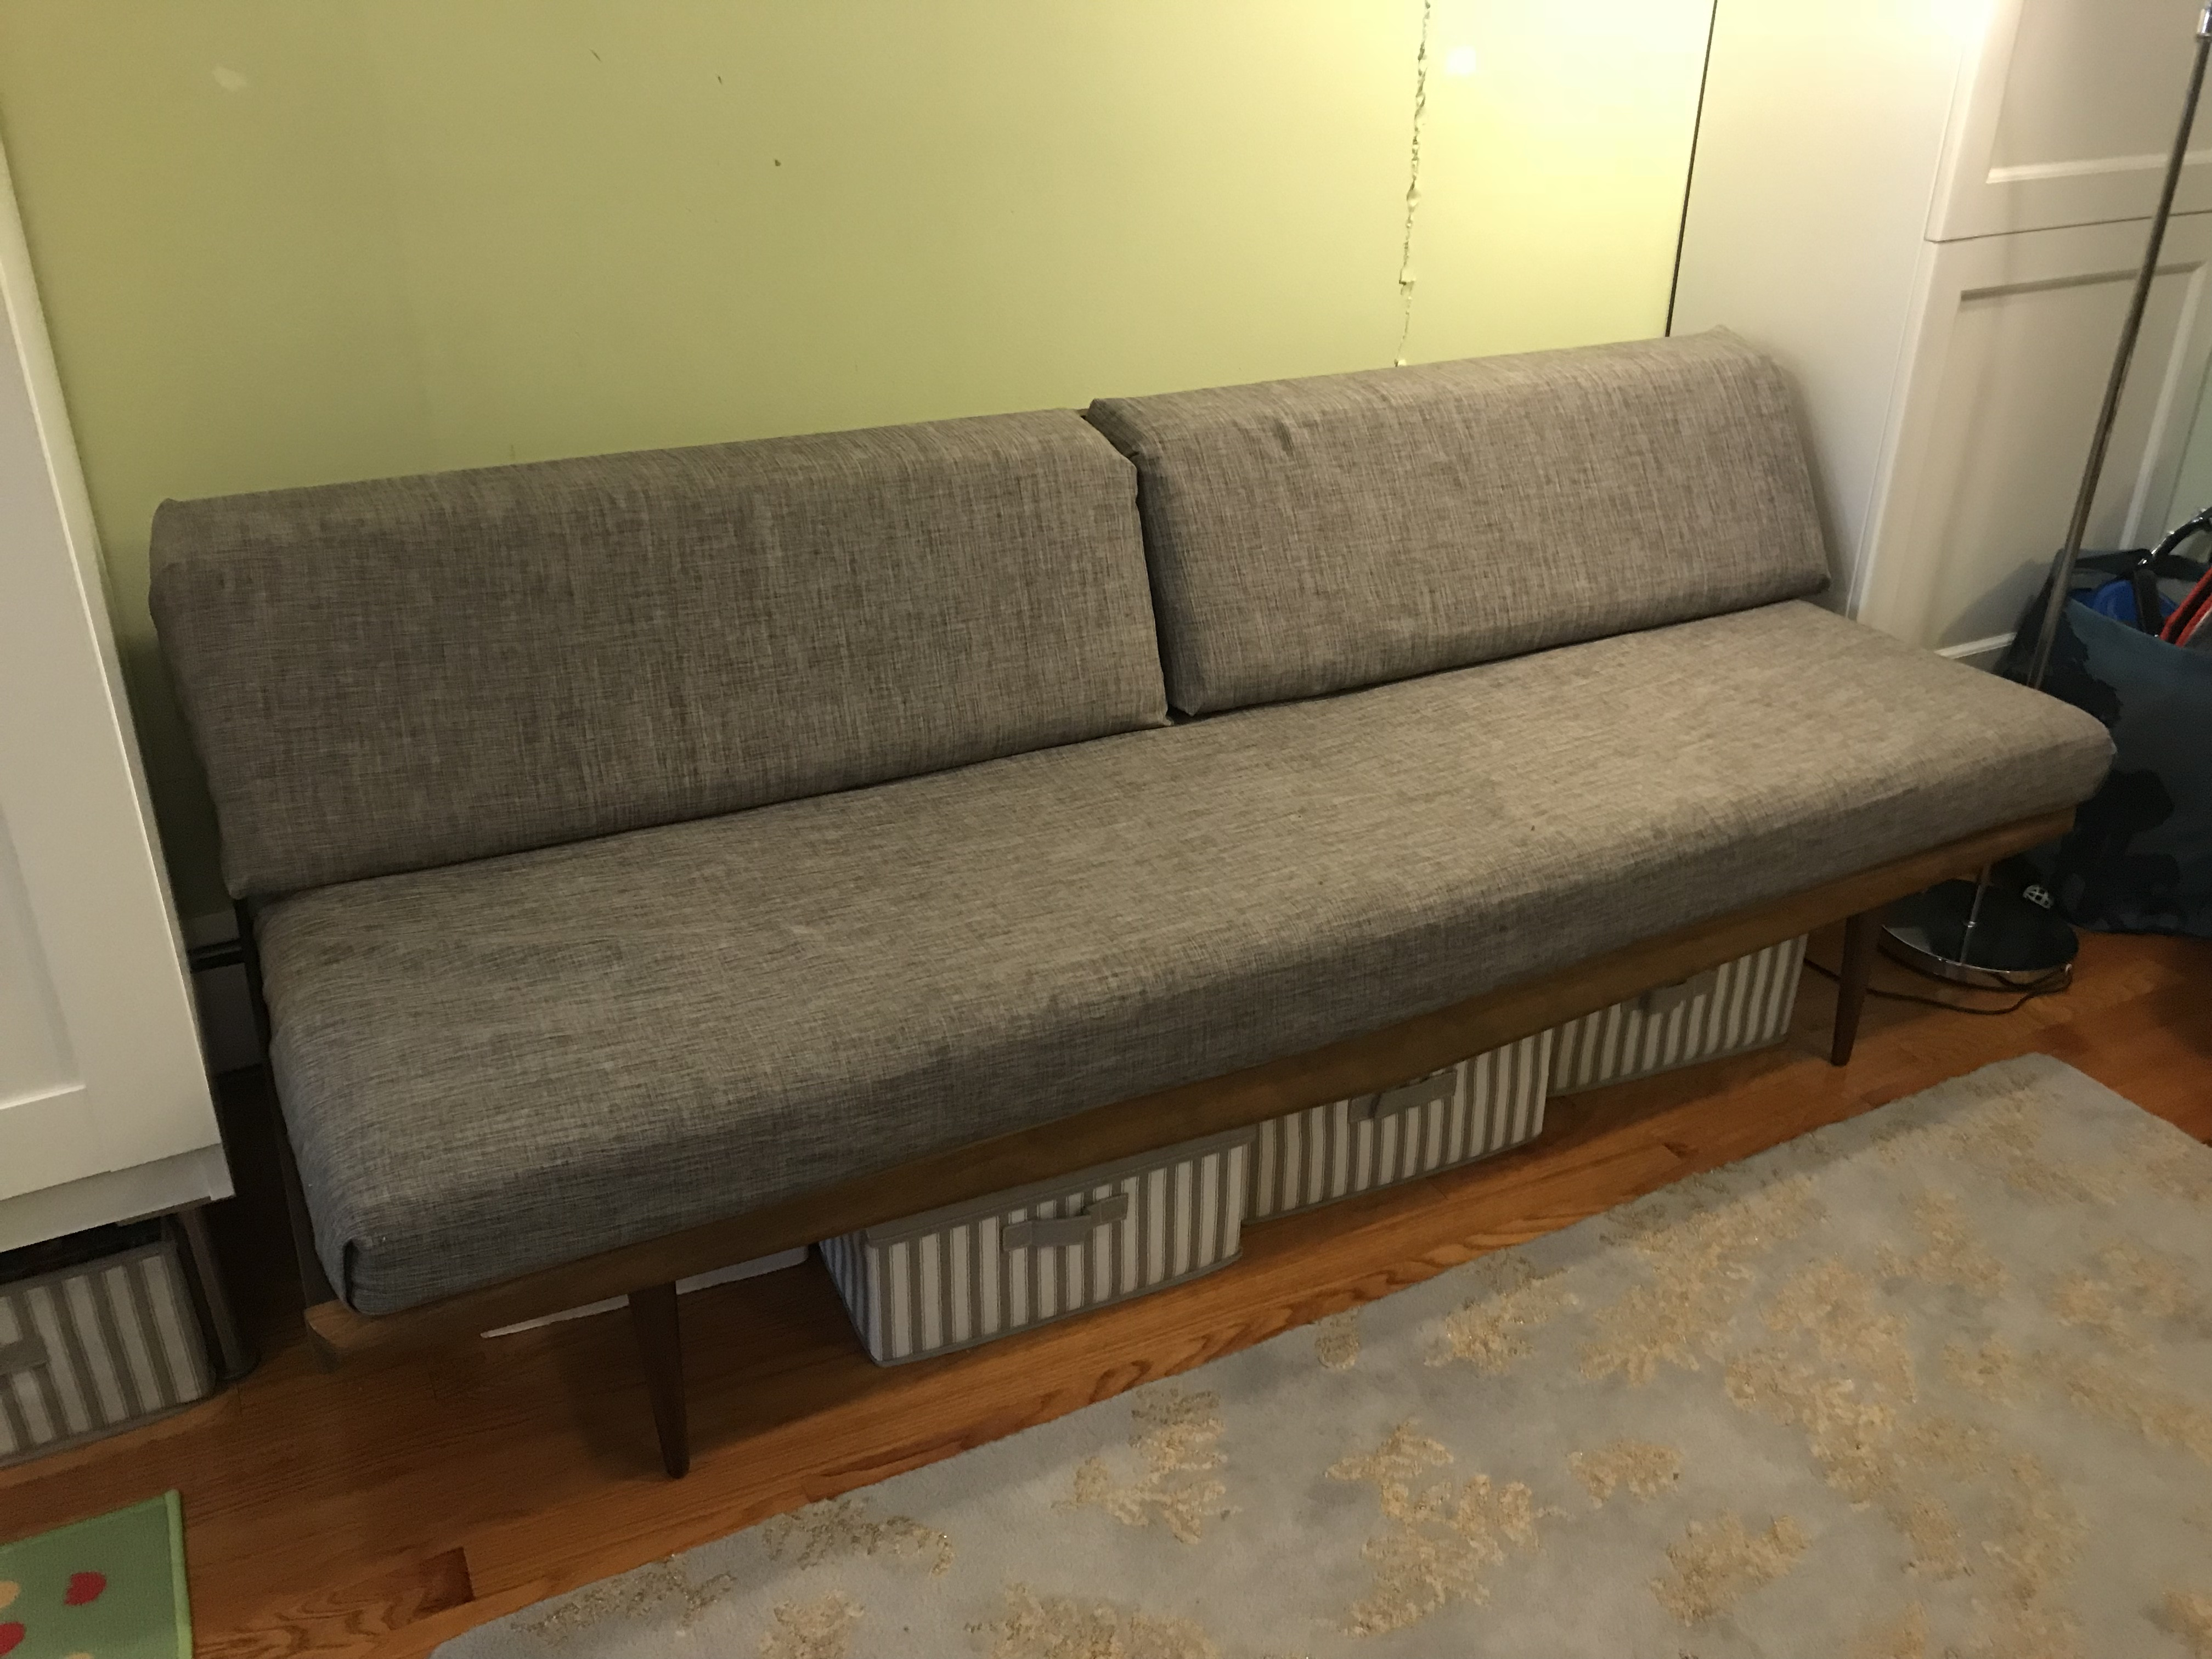 Modernica Nelson Danish Mid Century Daybed w/ Vintage Frame